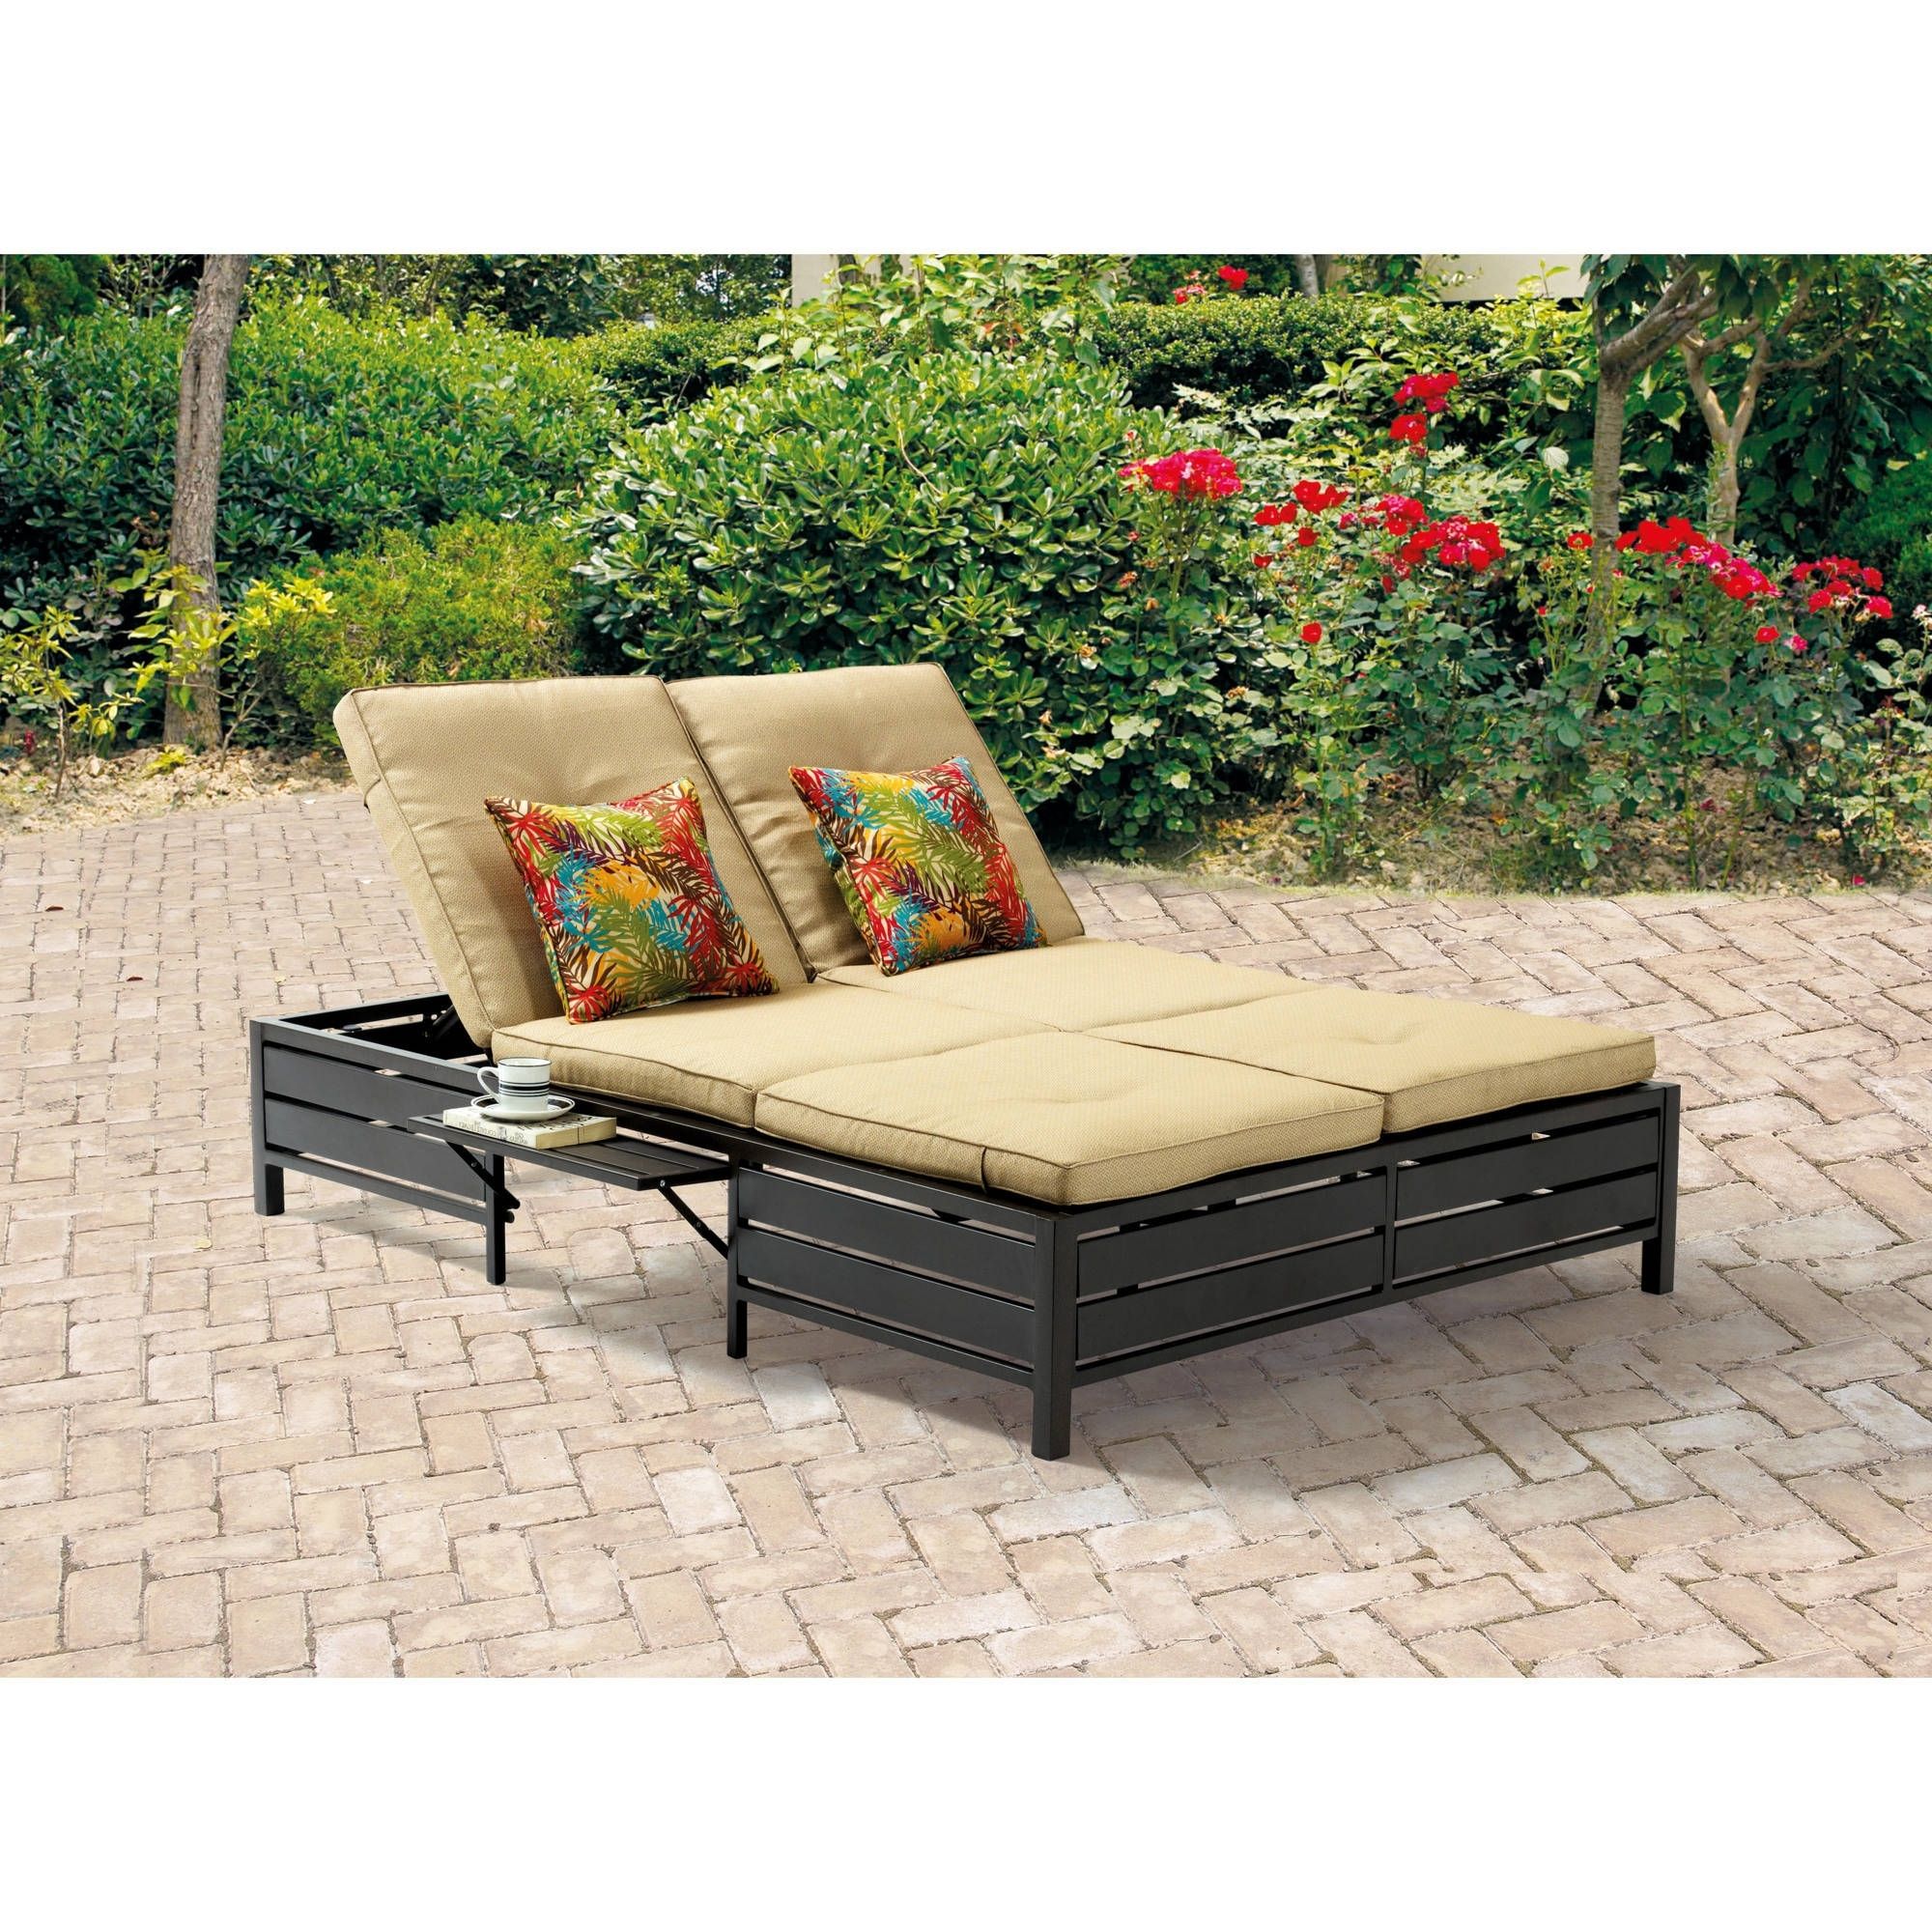 Mainstays Outdoor Double Chaise Lounger, Tan, Seats 2 – Walmart Inside Most Current Outdoor Double Chaise Lounges (View 7 of 15)